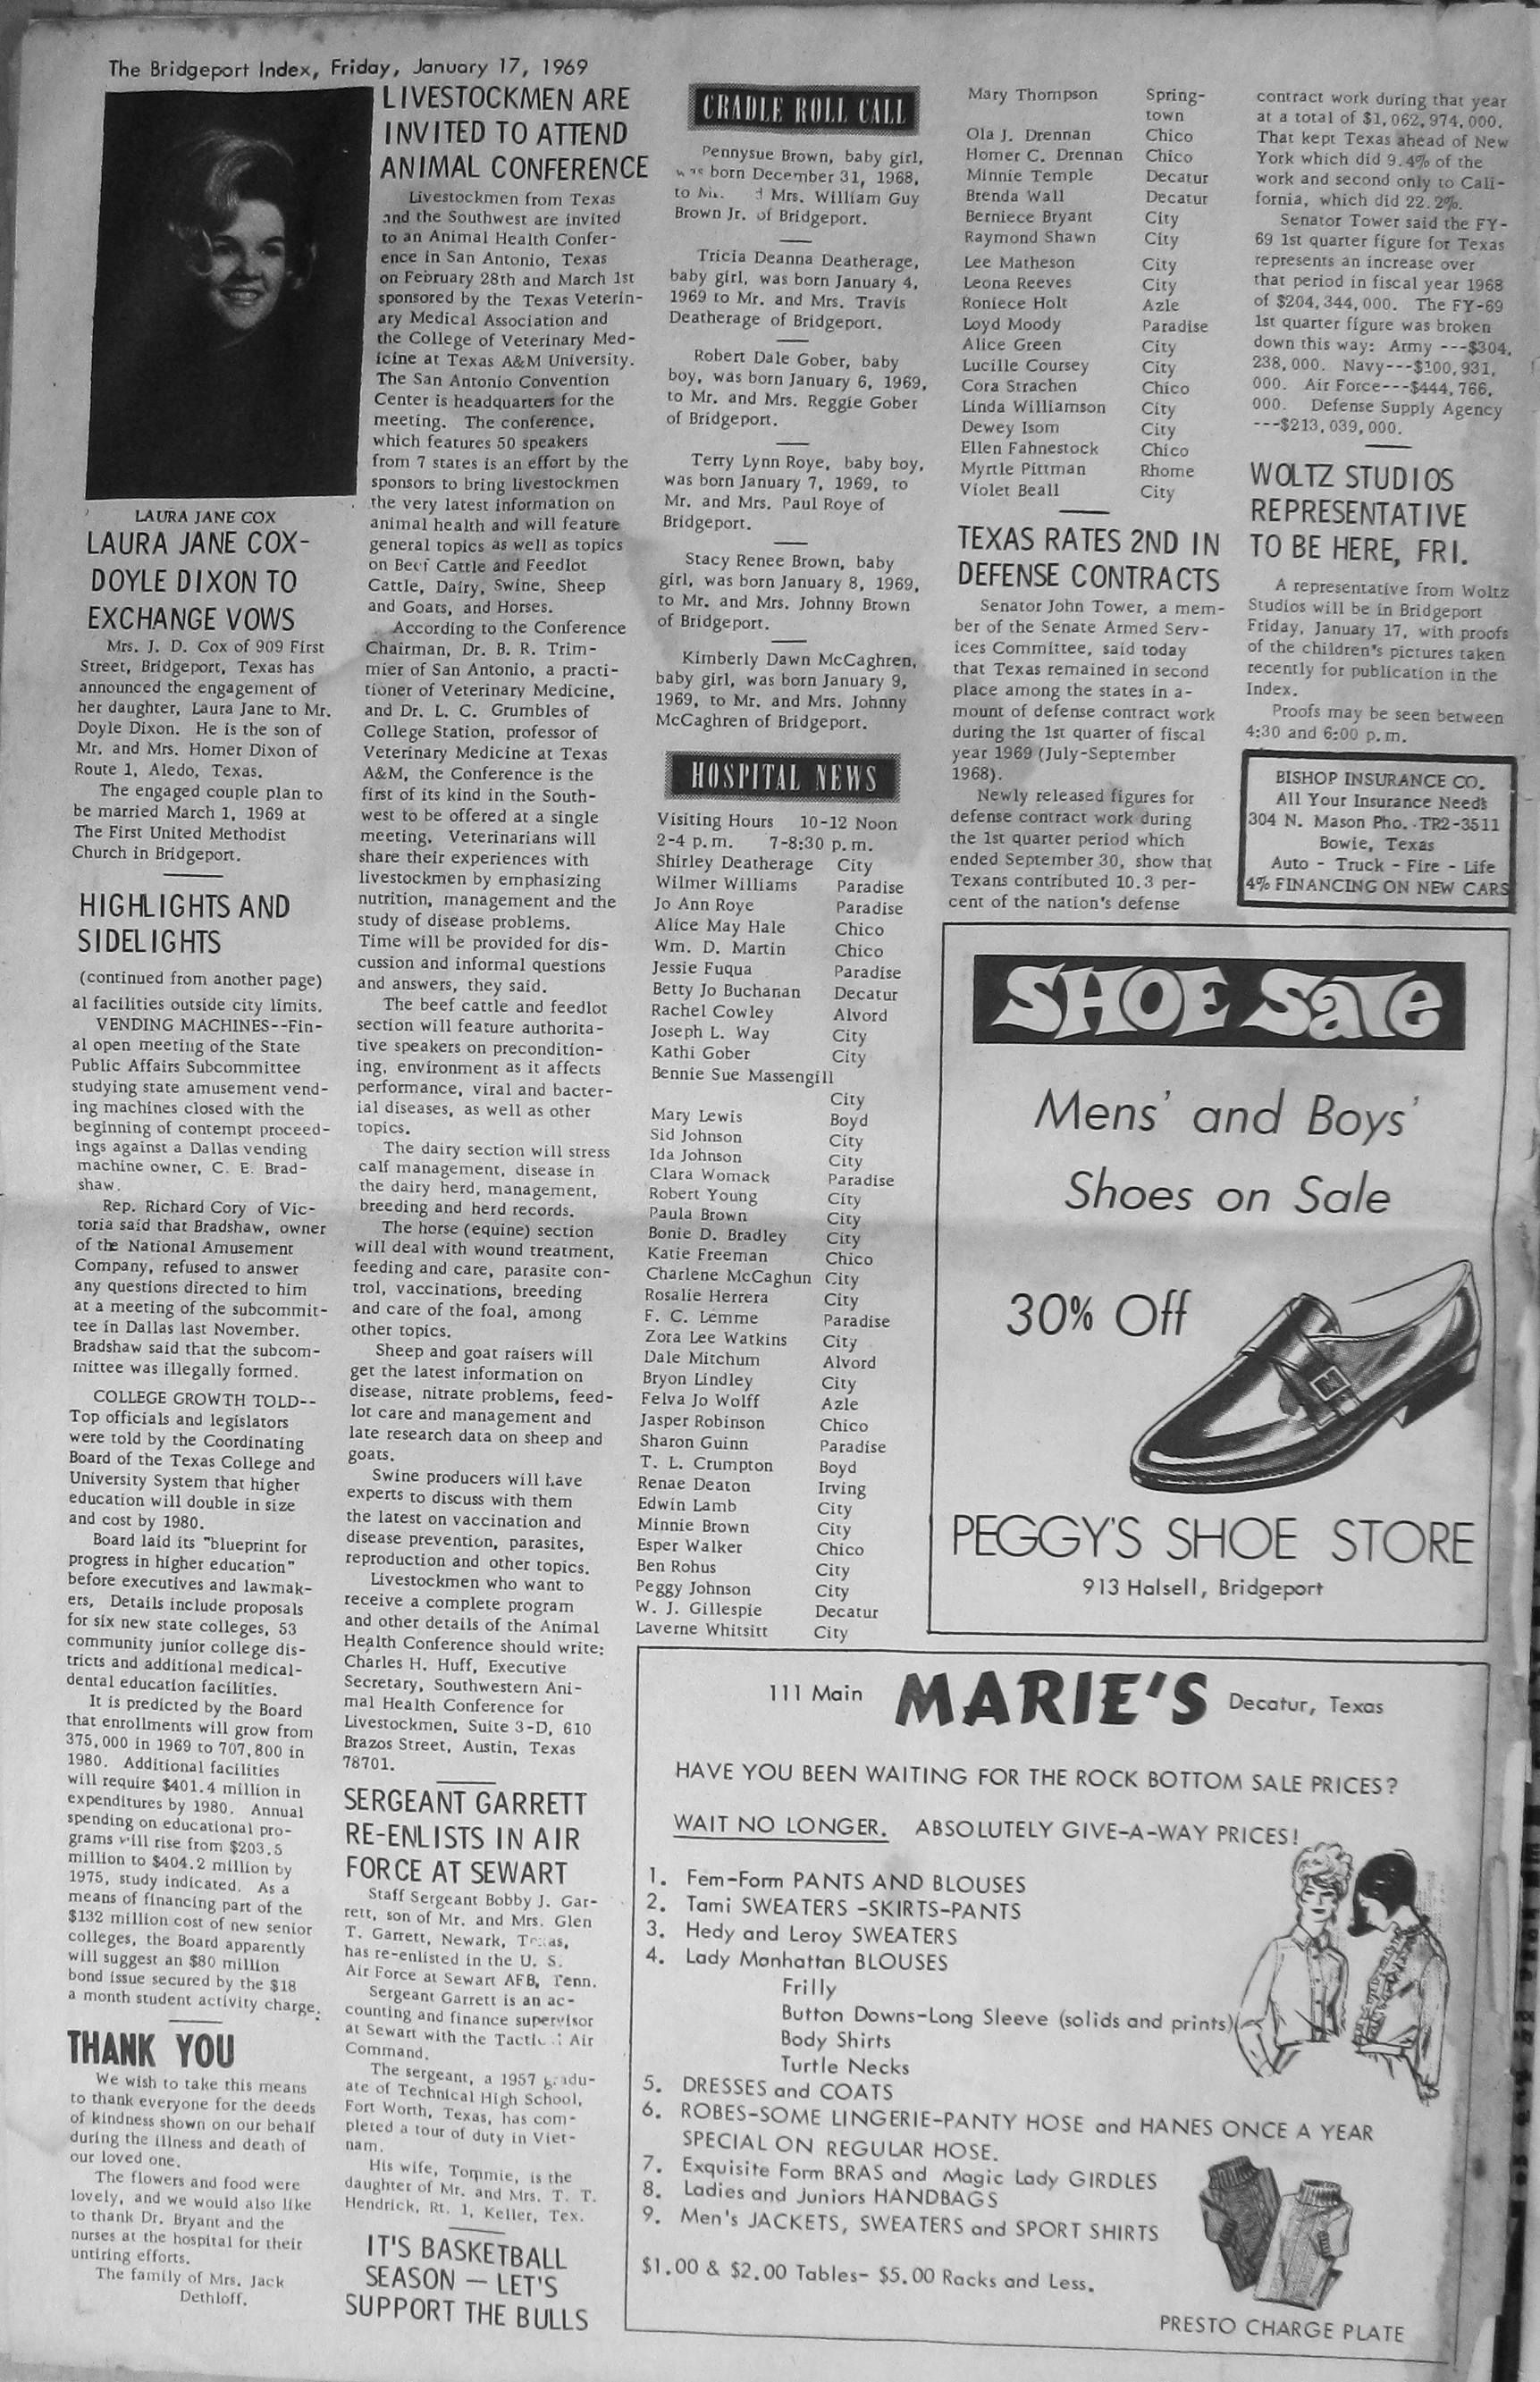 Index of Names R Z from the 1969 Bridgeport Index Newspaper